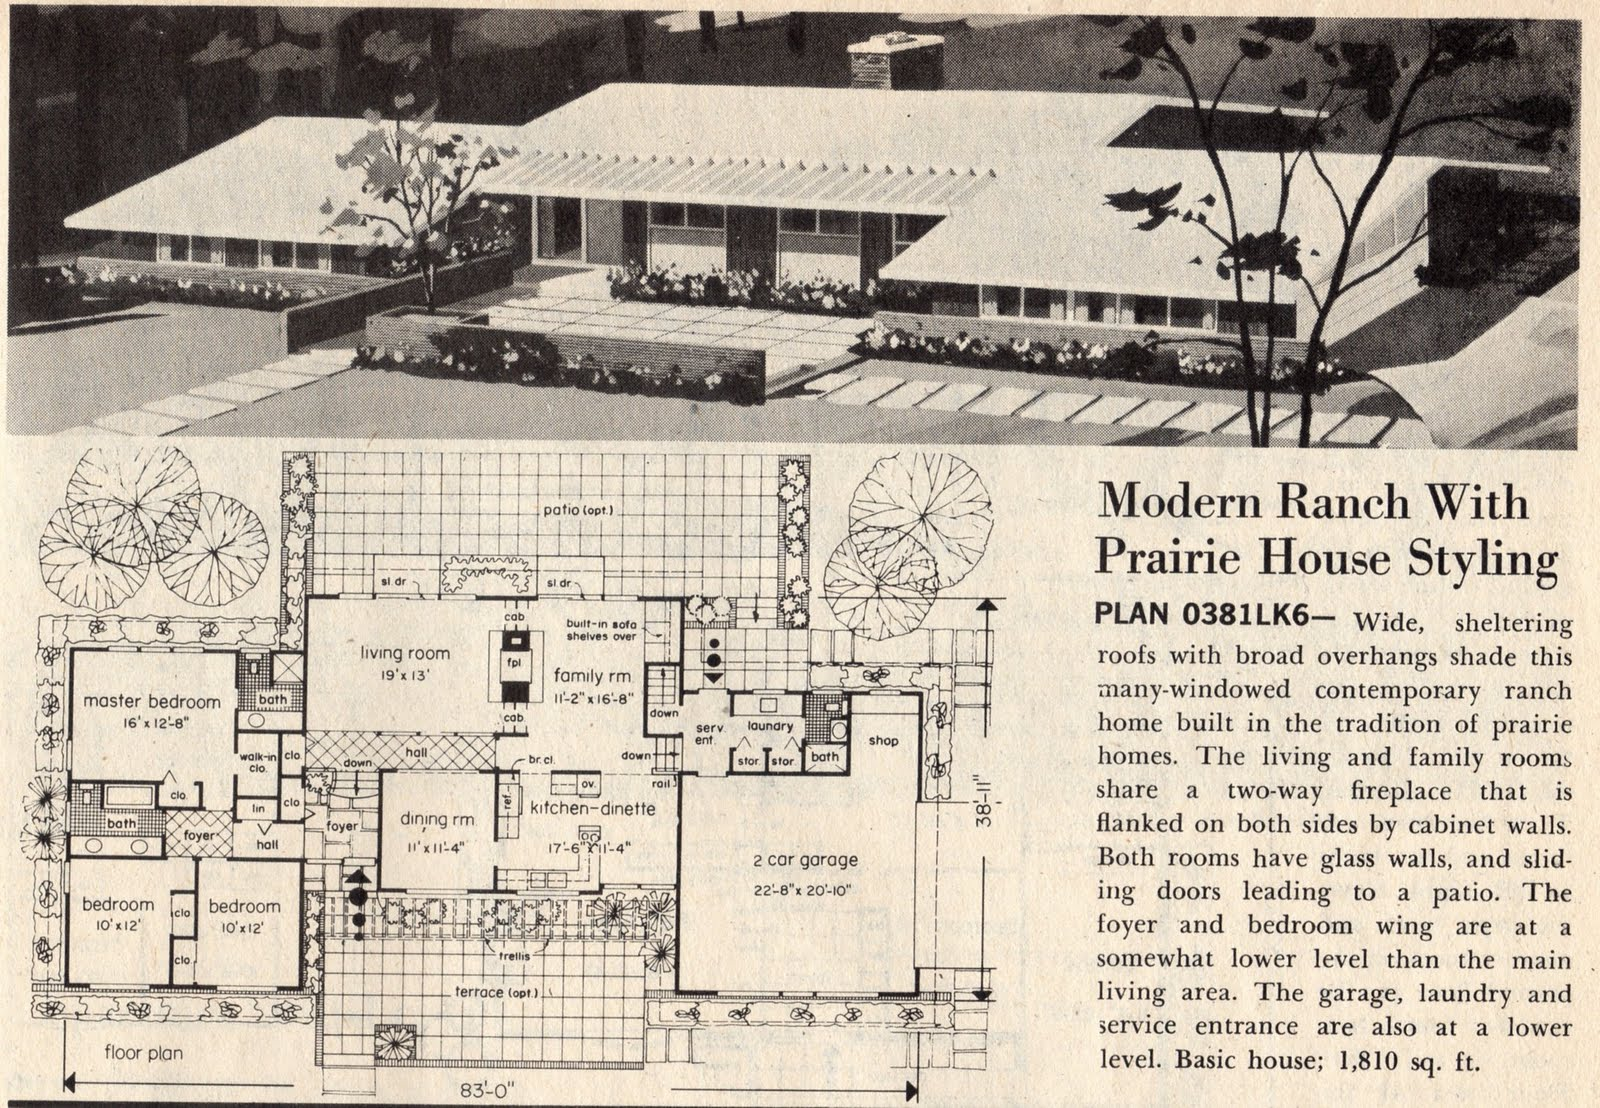 Mad for mid century june 2011 for Mid century modern ranch style house plans